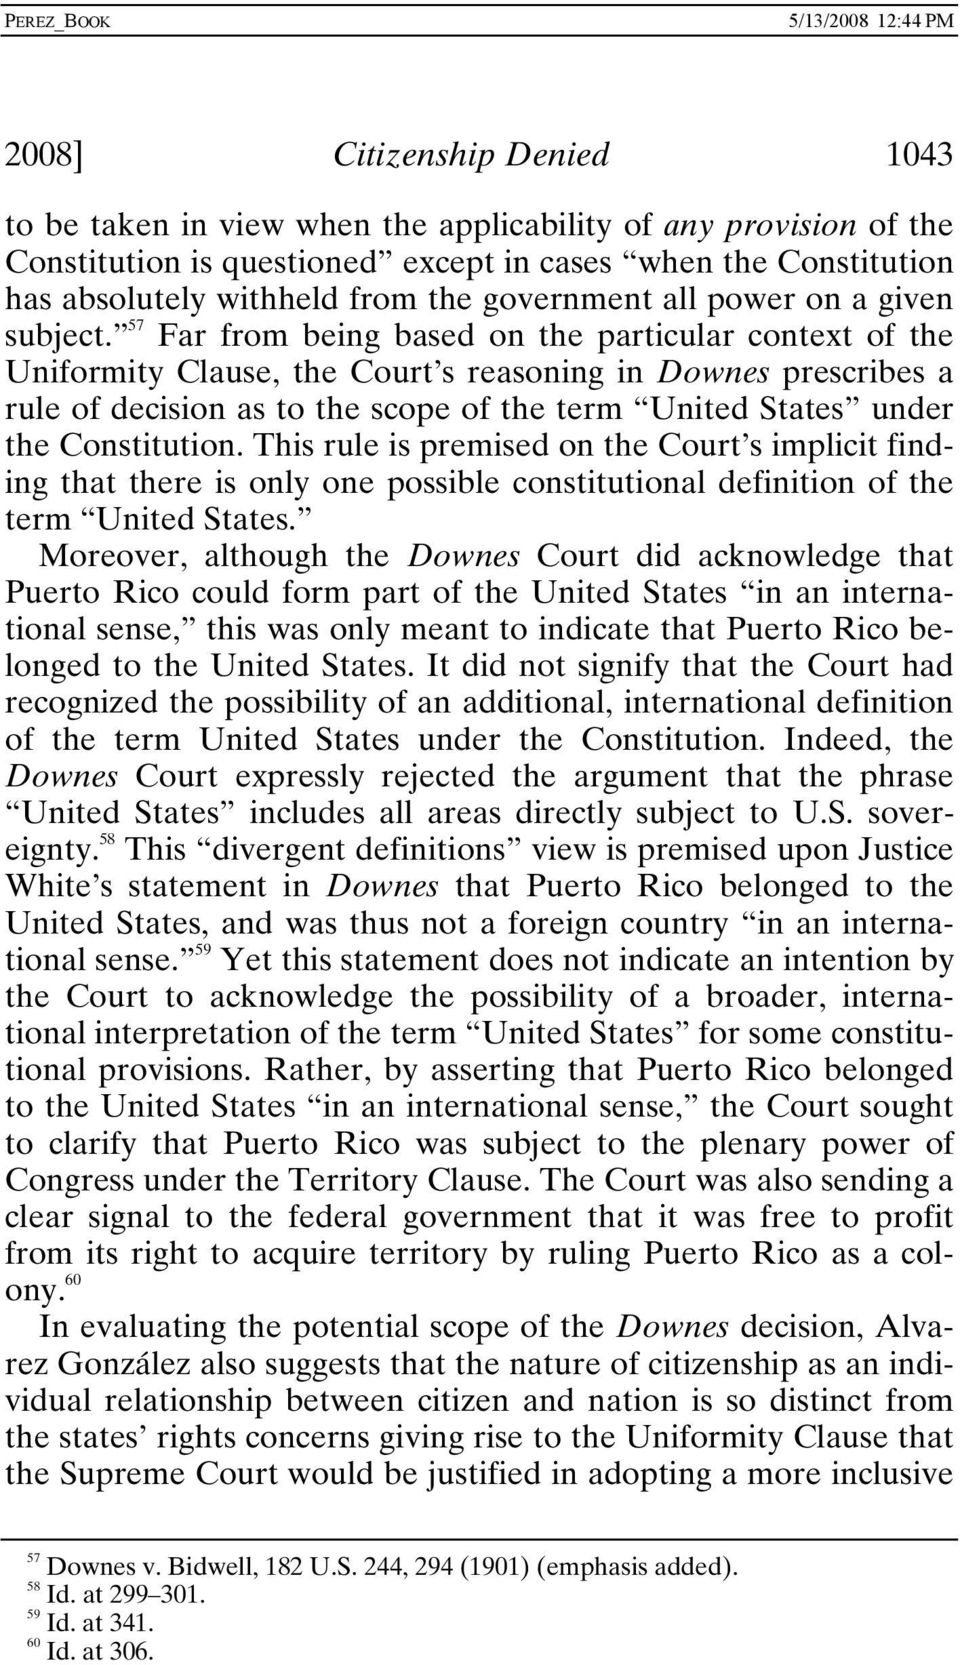 57 Far from being based on the particular context of the Uniformity Clause, the Court s reasoning in Downes prescribes a rule of decision as to the scope of the term United States under the